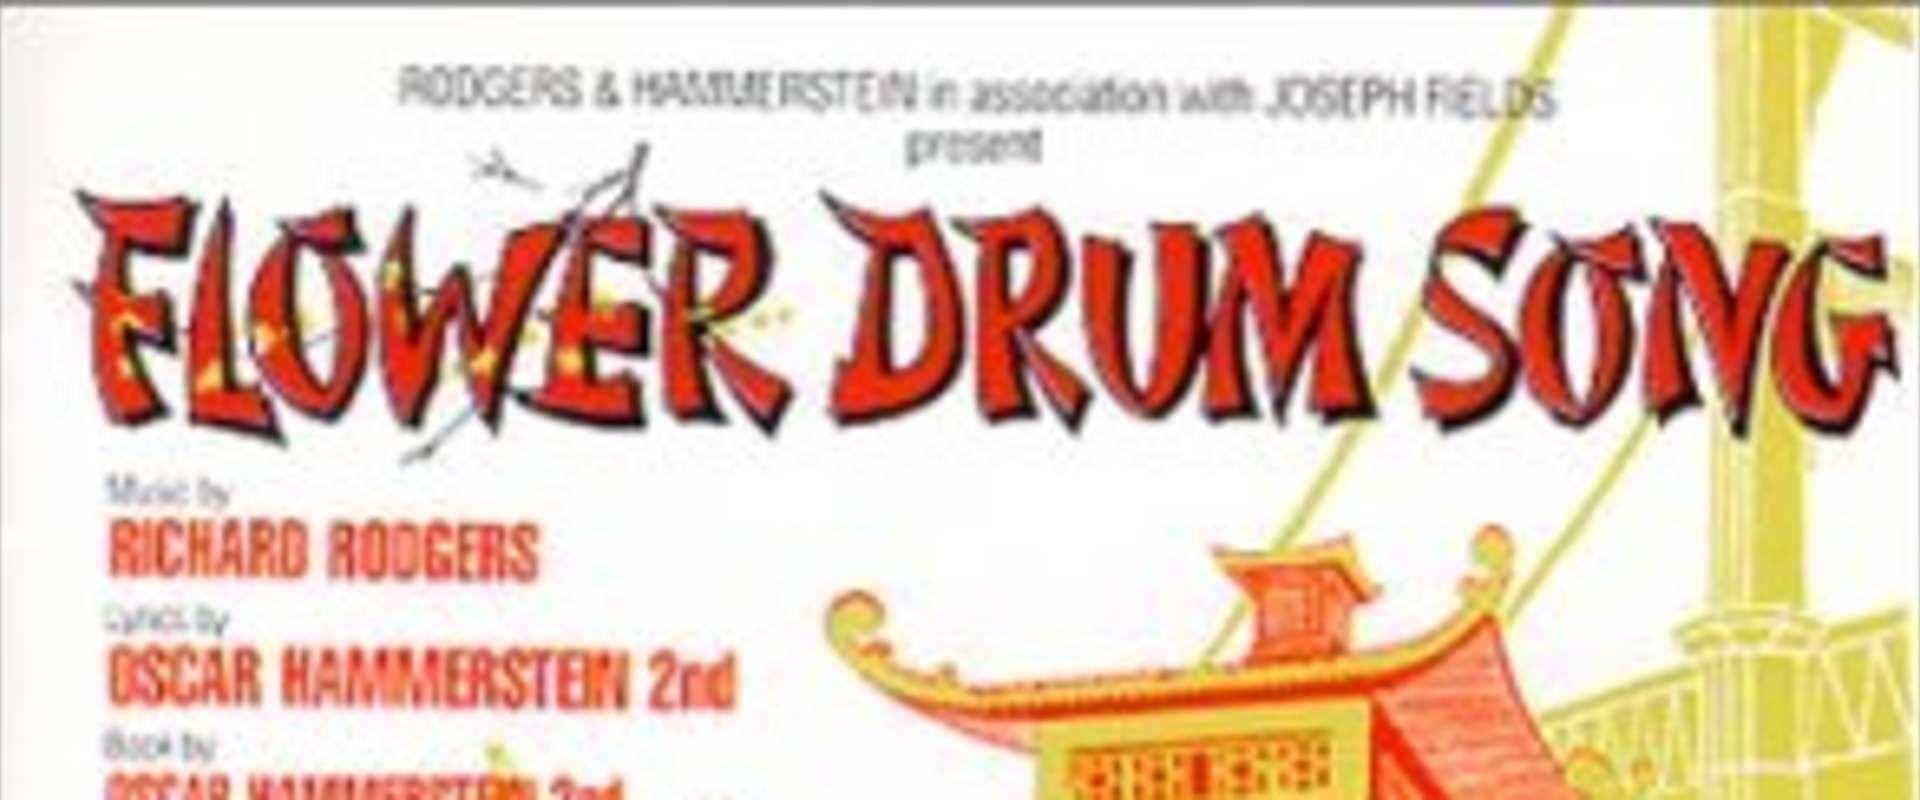 Flower Drum Song background 2